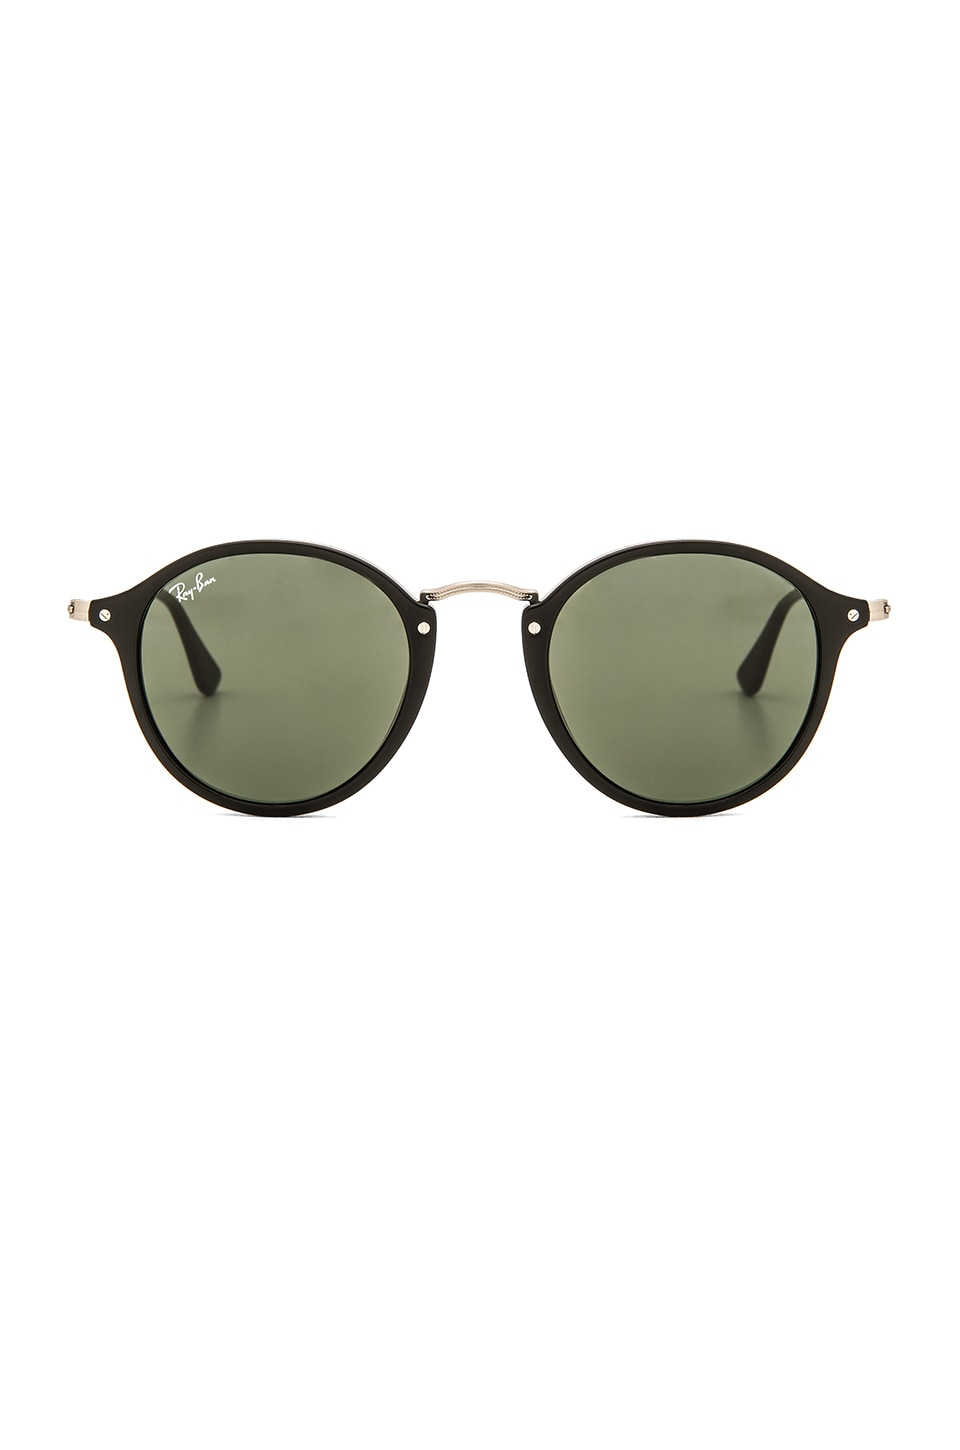 Ray-Ban Round Fleck in Black & Green Classic G-15